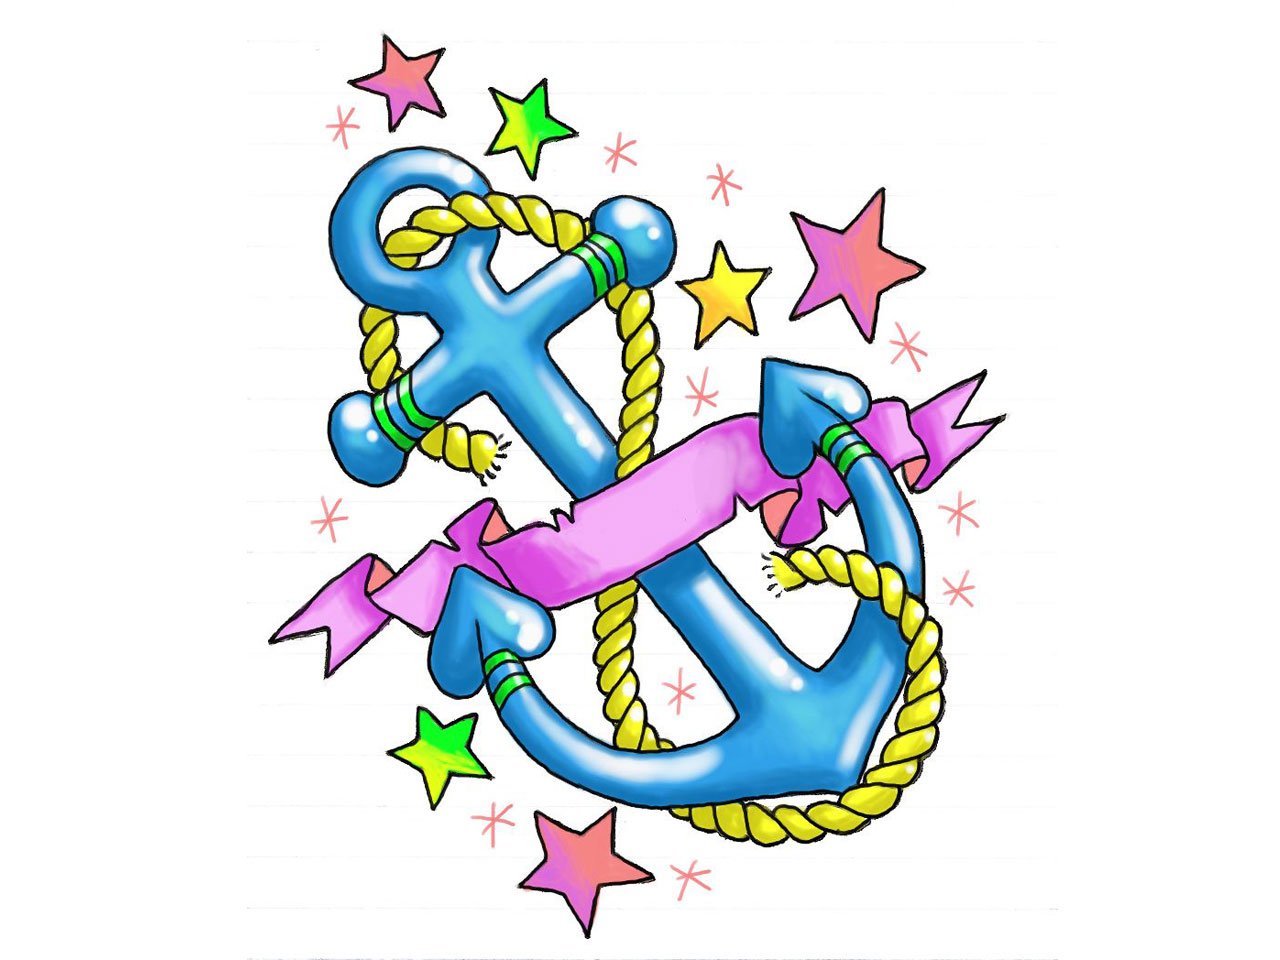 1280x960 Girly Anchor With Stars And Hearts Tattoo Design.jpg